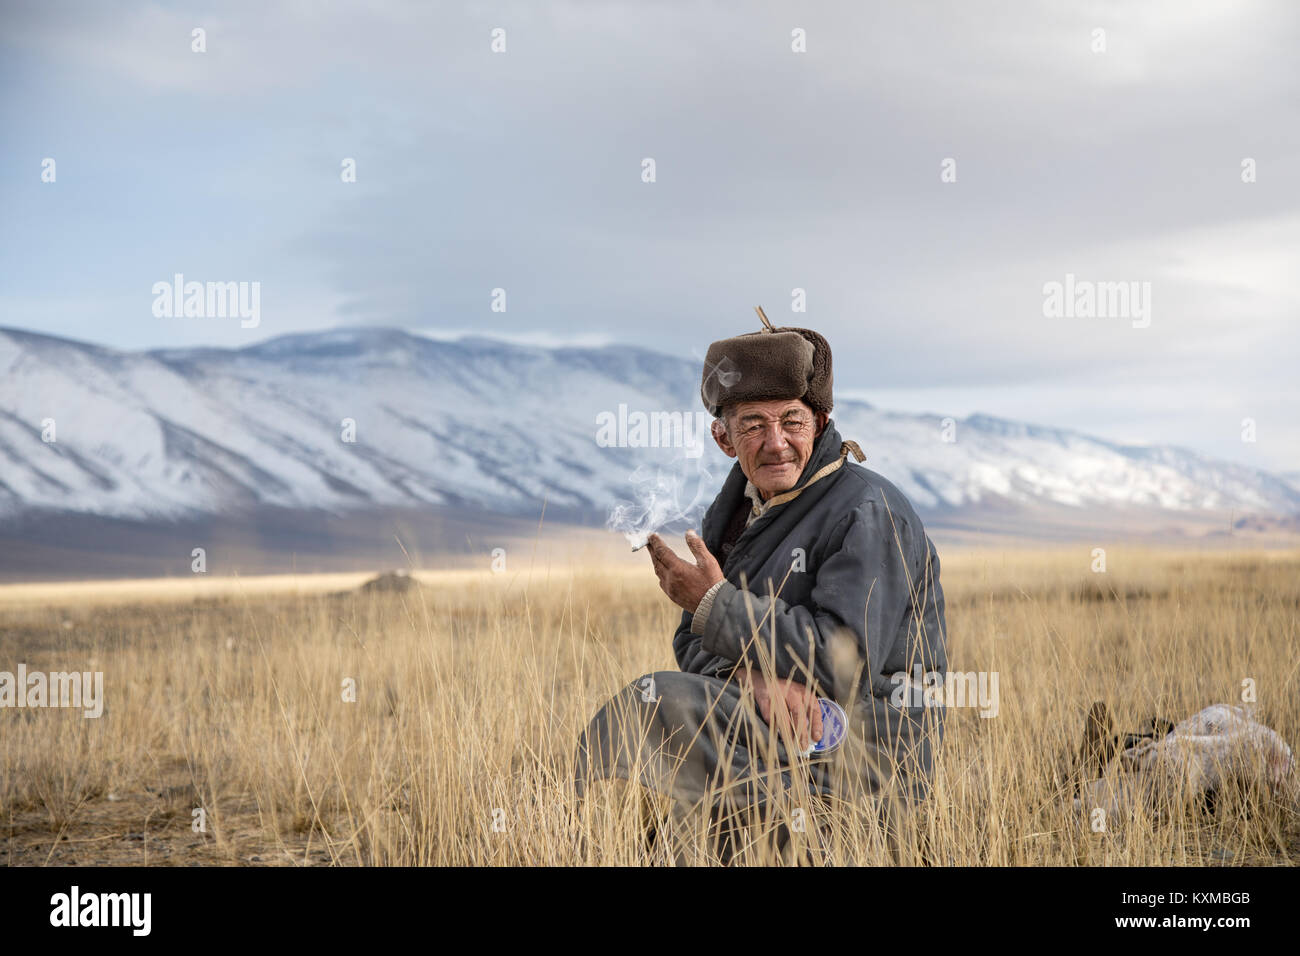 Mongolian country side rural old man smoking cigarette fur hat Mongolia grandfather seating resting - Stock Image